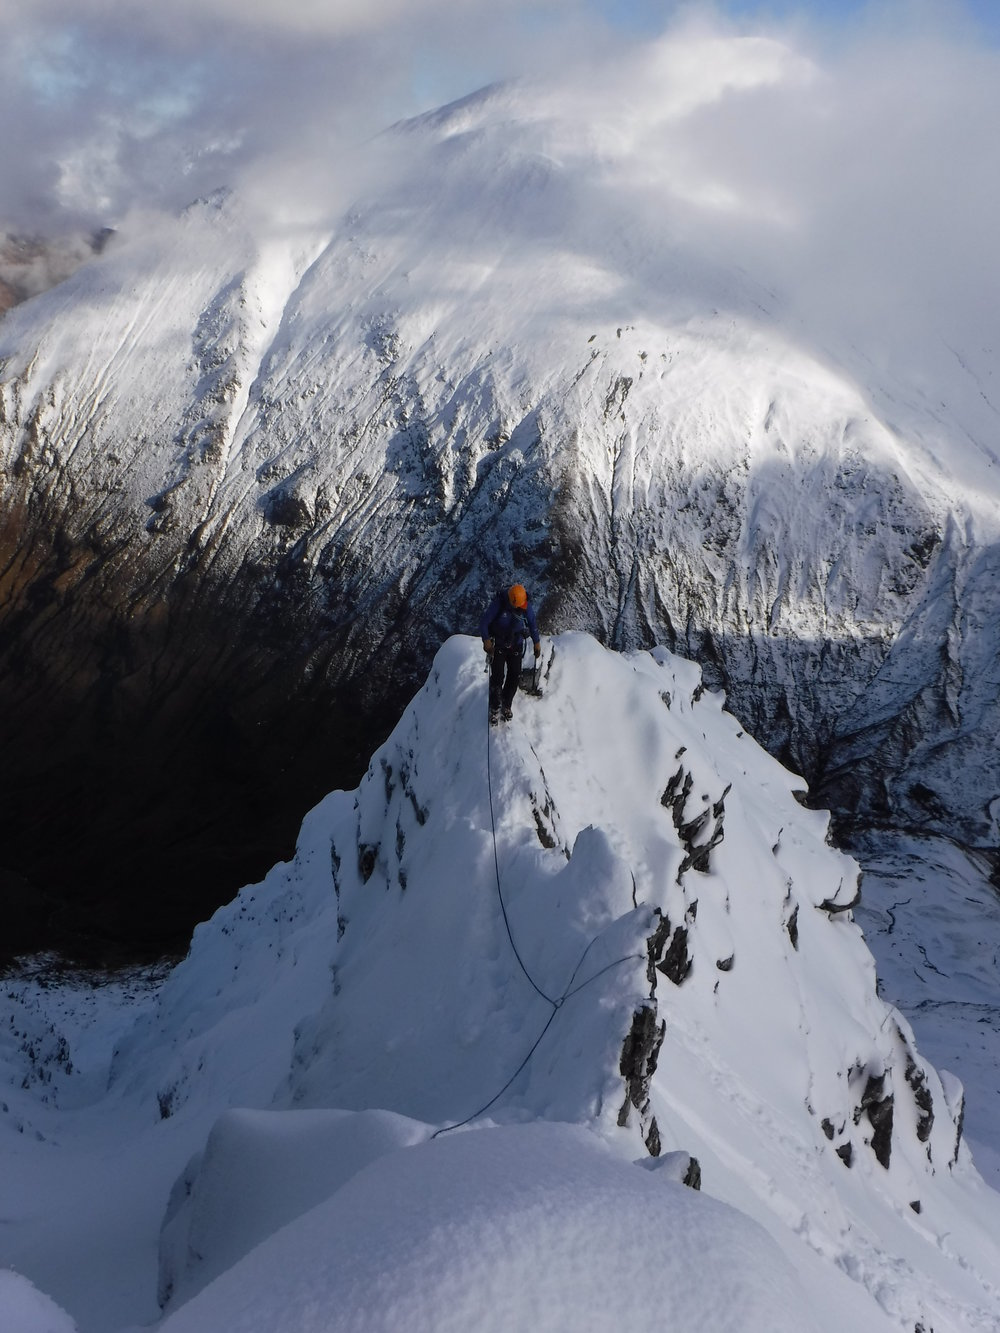 East buttress of the North Ridge of Stob Ban, II,3, February 2016